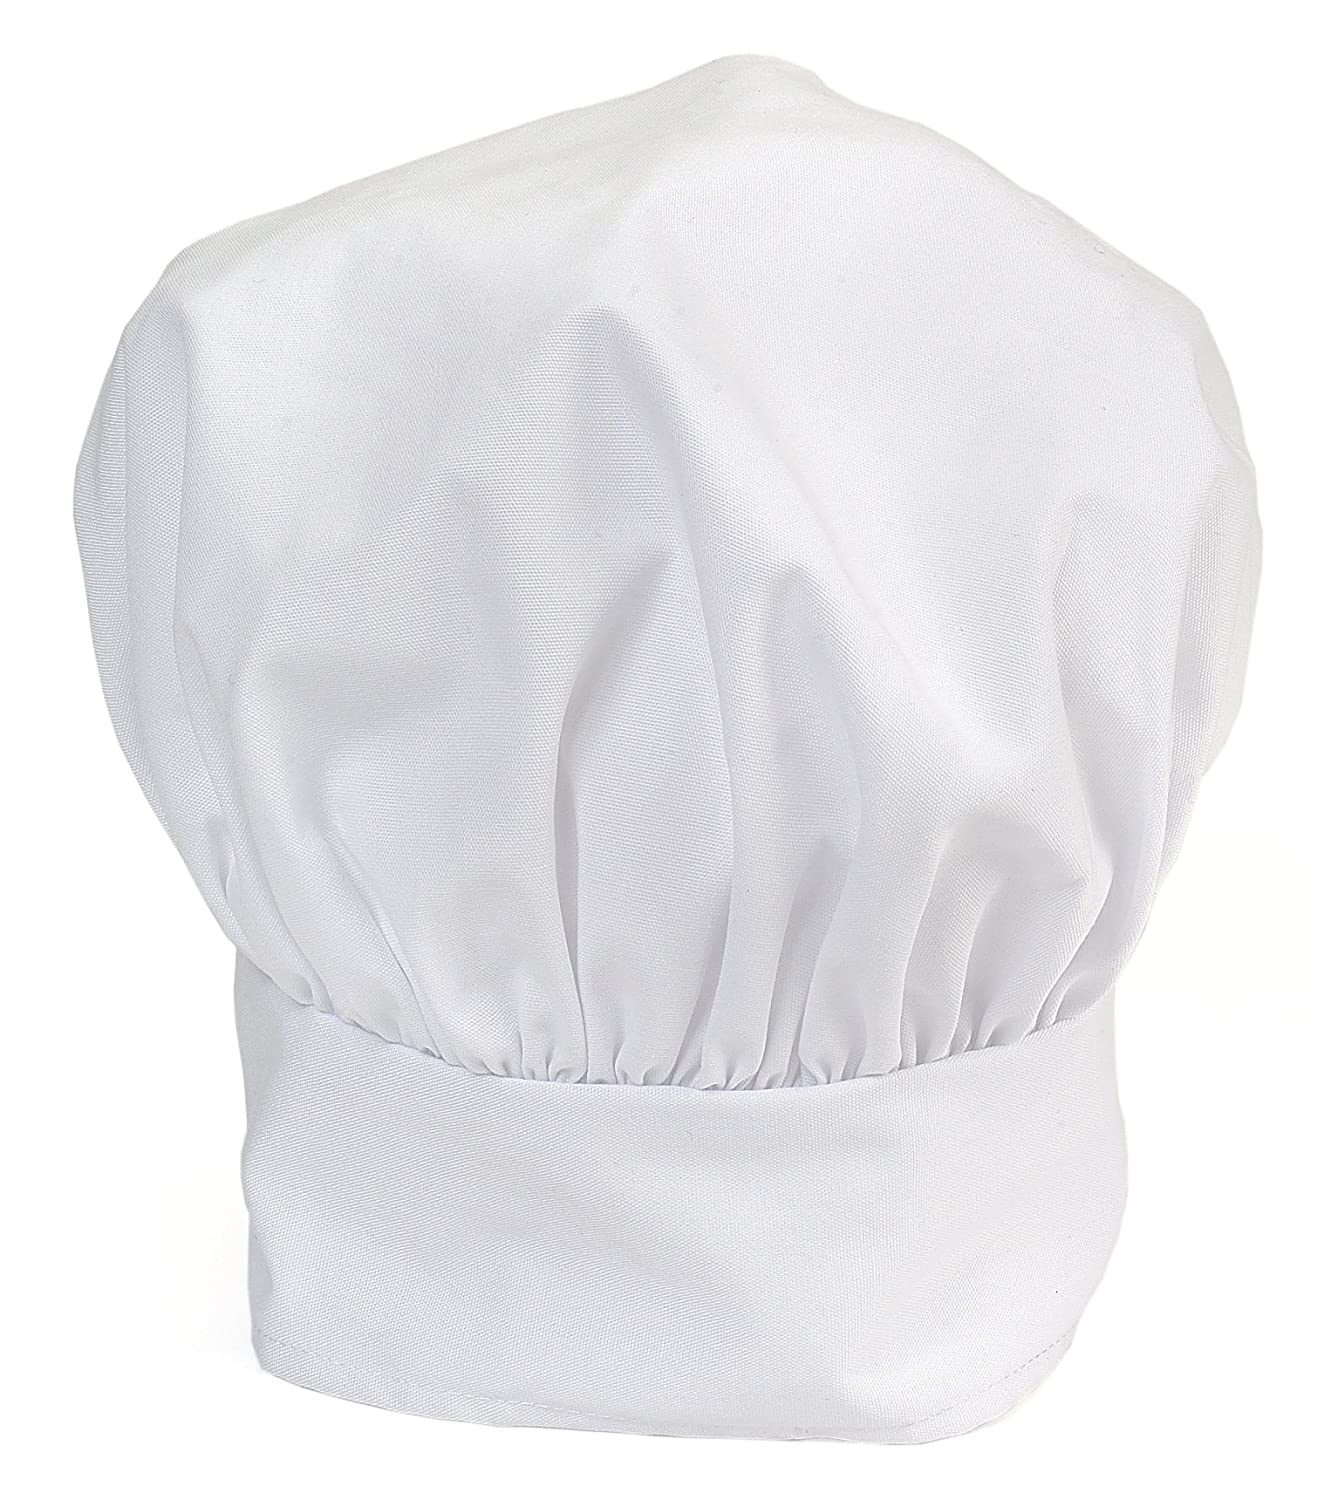 Ritz 70020 Pro Series Adjustable White Chef's Hat, One Size Fits All